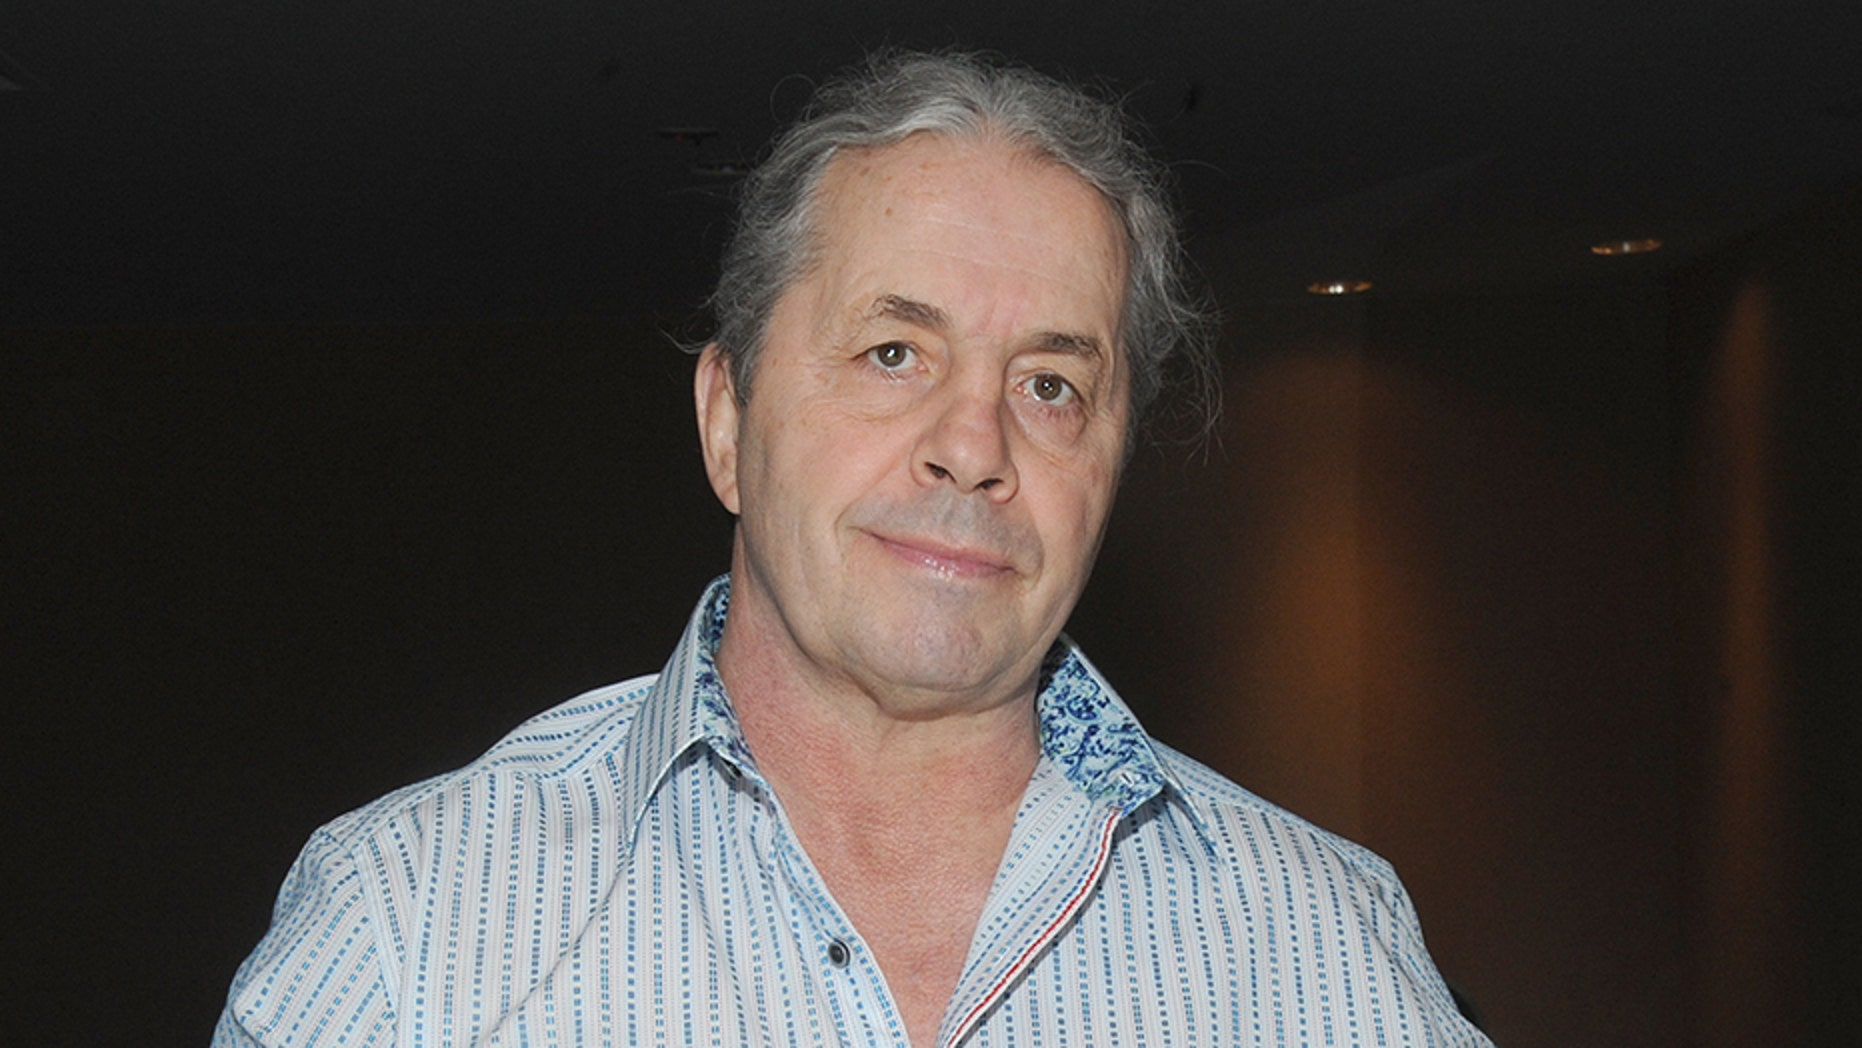 Bret Hart accused the widow of completely separating herself from the company, while the WWE has kept his brother out of its Hall of Fame — and out of its merchandising as well.